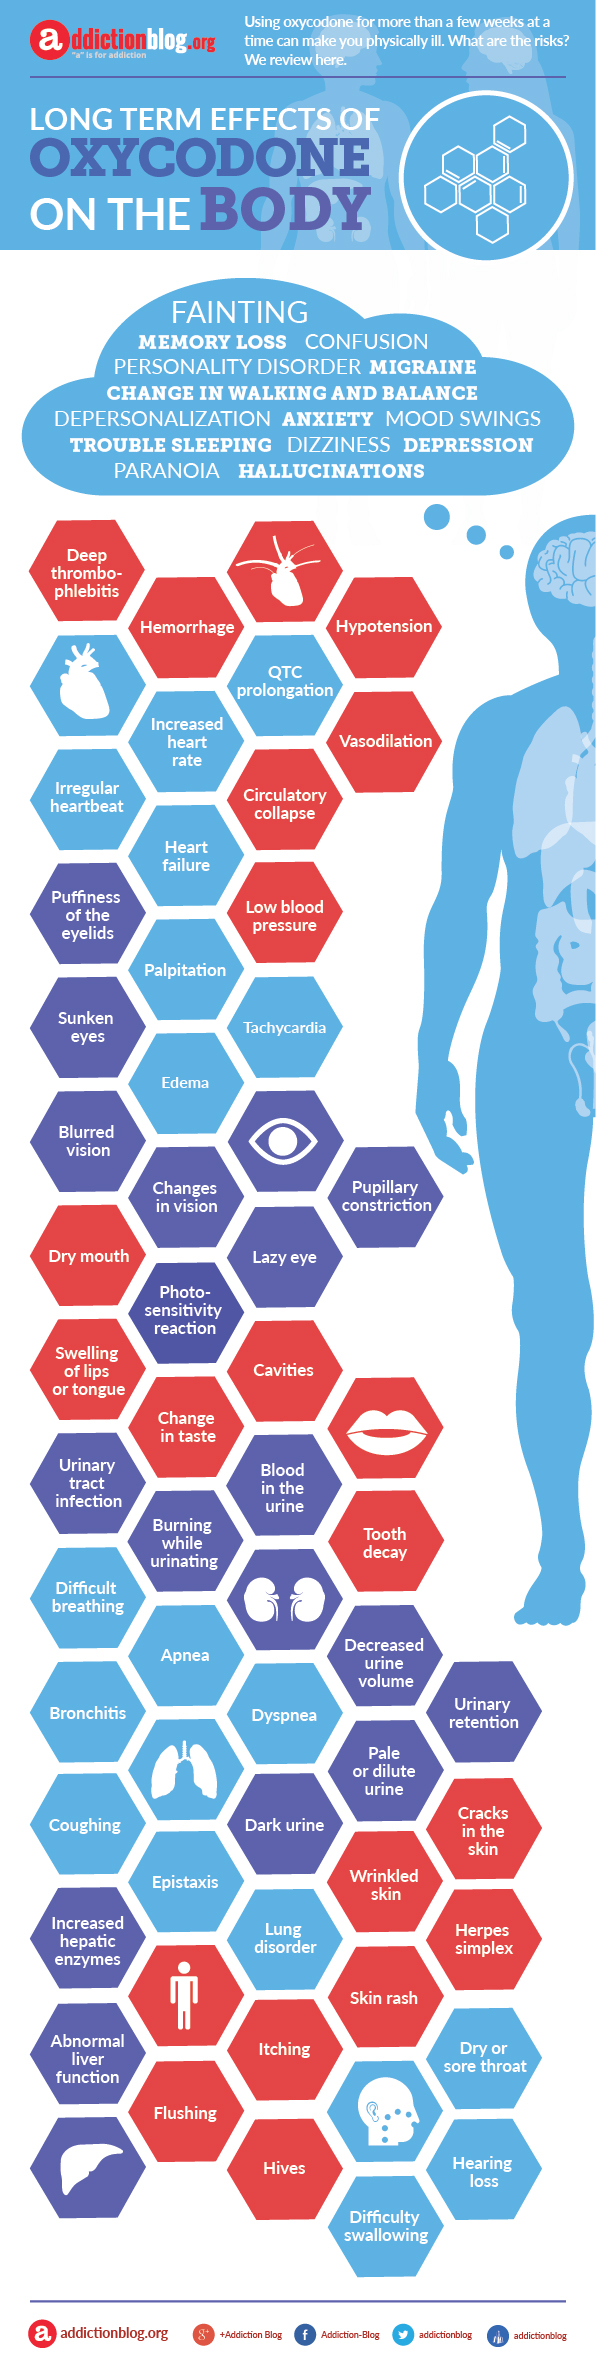 Oxycodone Effects on the Body after Long Term Use (INFOGRAPHIC)